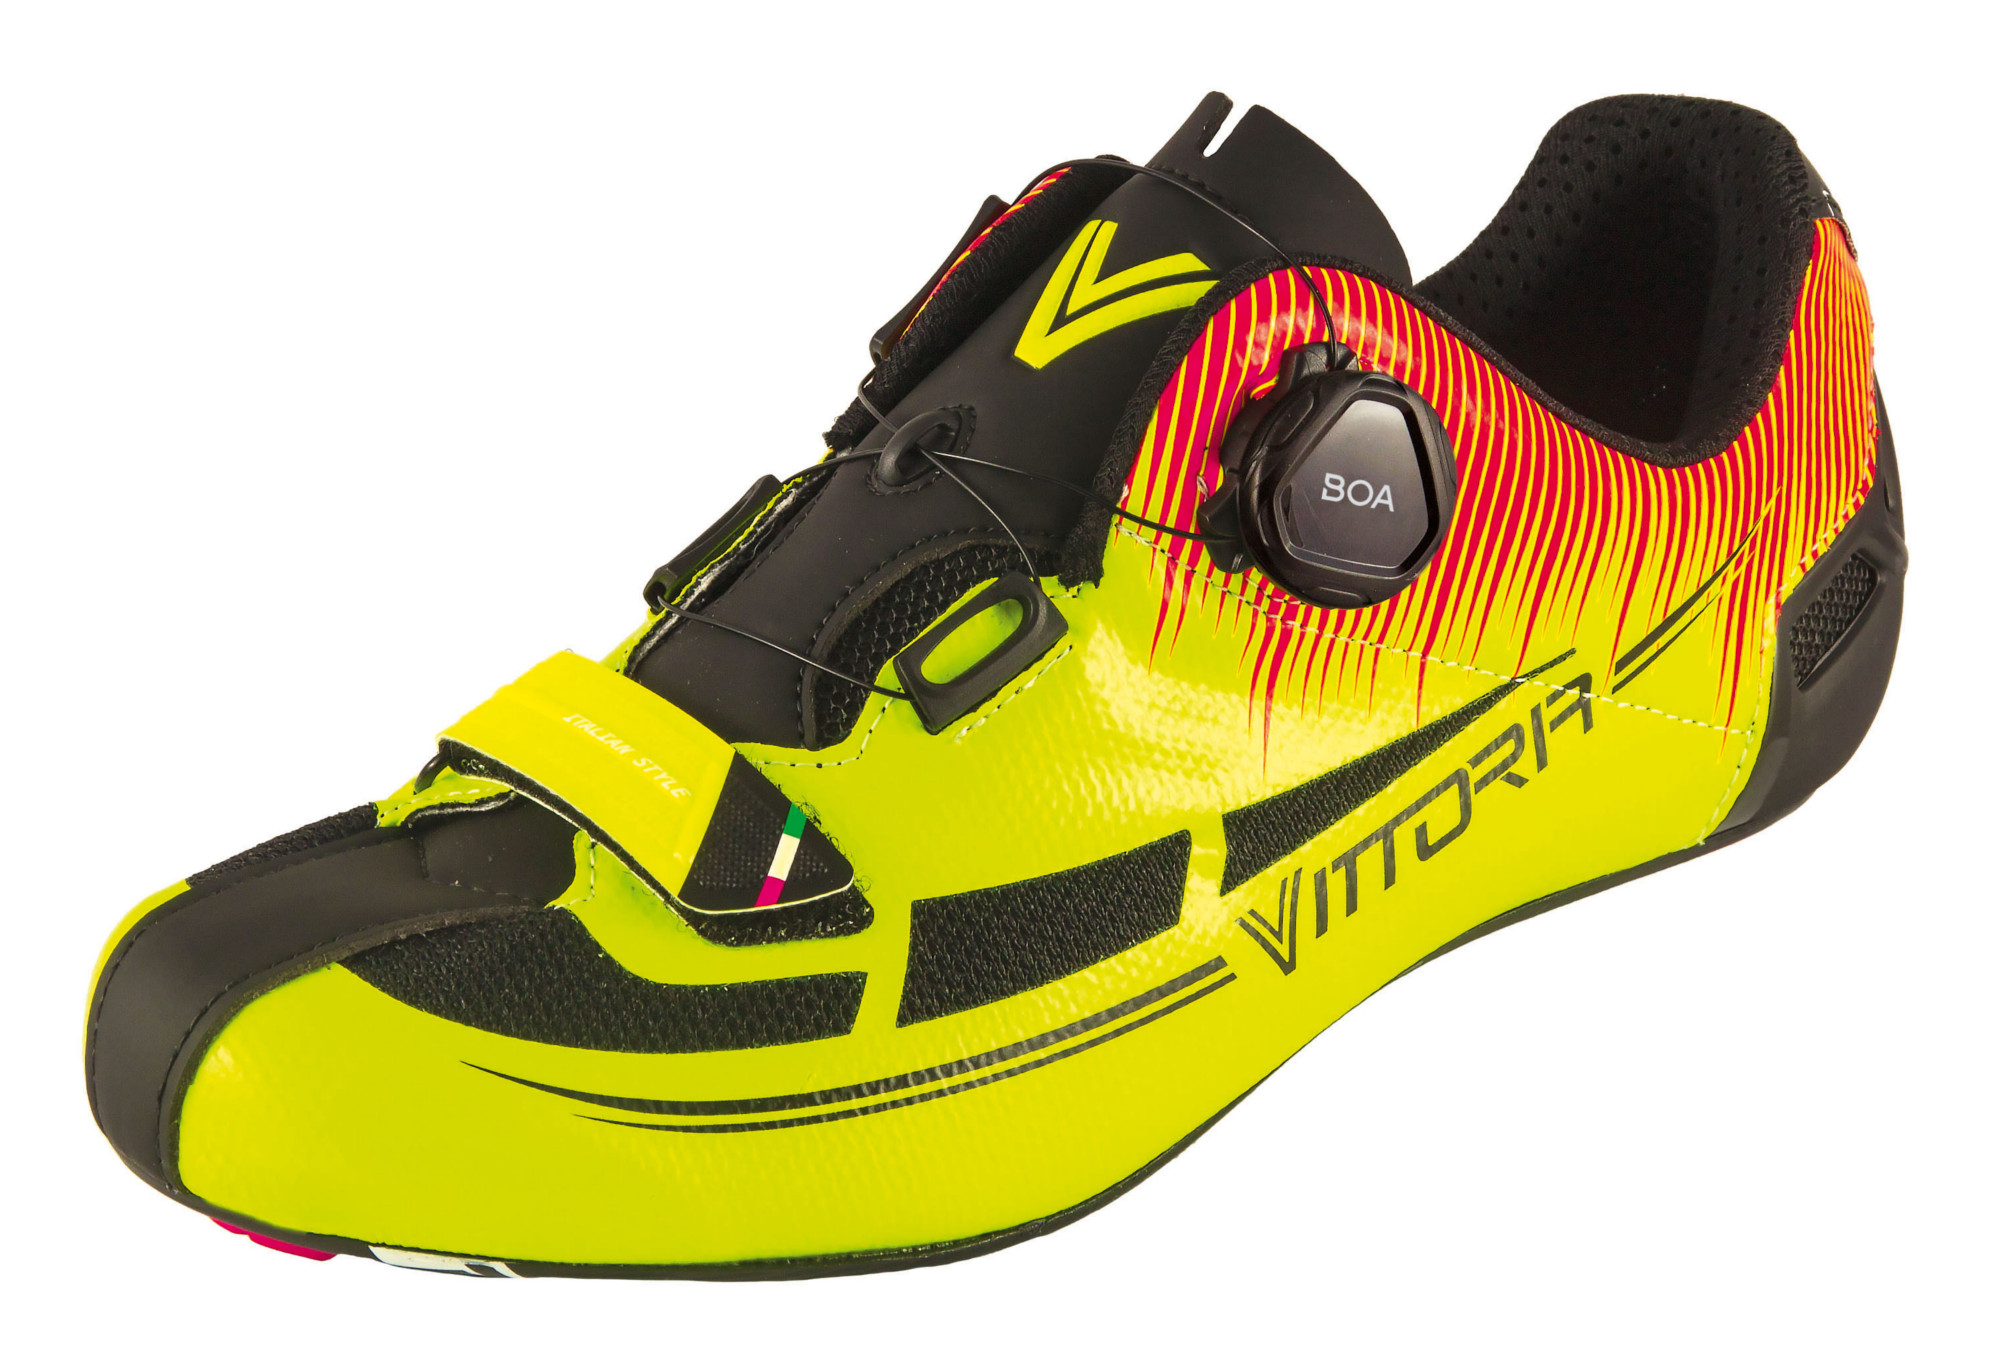 Fusion Pro Road Shoes Vittoria Fusion Pro Yellow Black Red